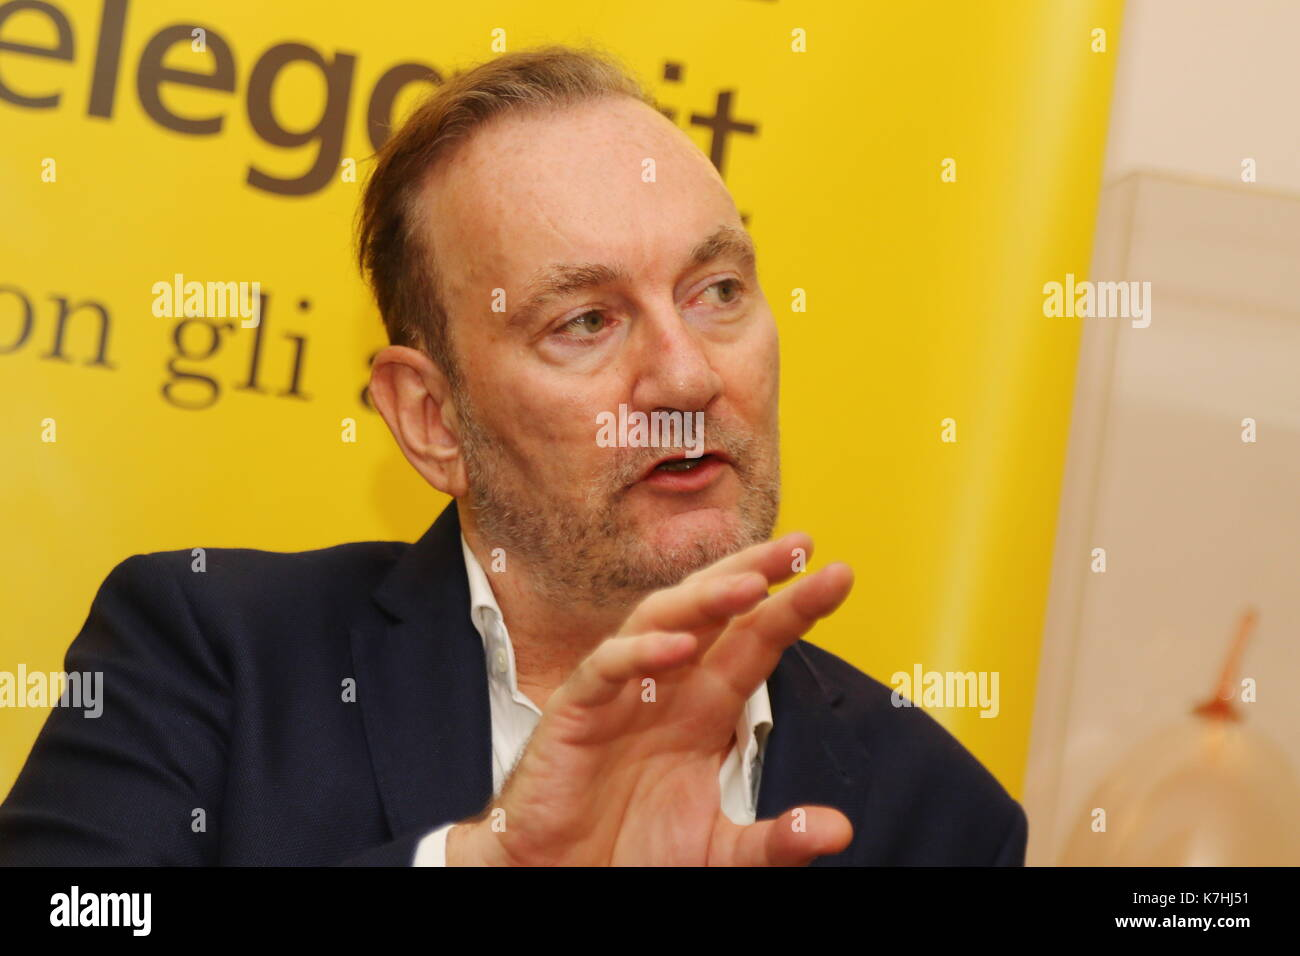 ITALY, Pordenone: British novelist Lawrence Osborne attend at the press conference during a literary event Pordenonelegge.it XVII BookFest with authors from 13 to 17 September at Pordenone on 16th September, 2017. - Stock Image